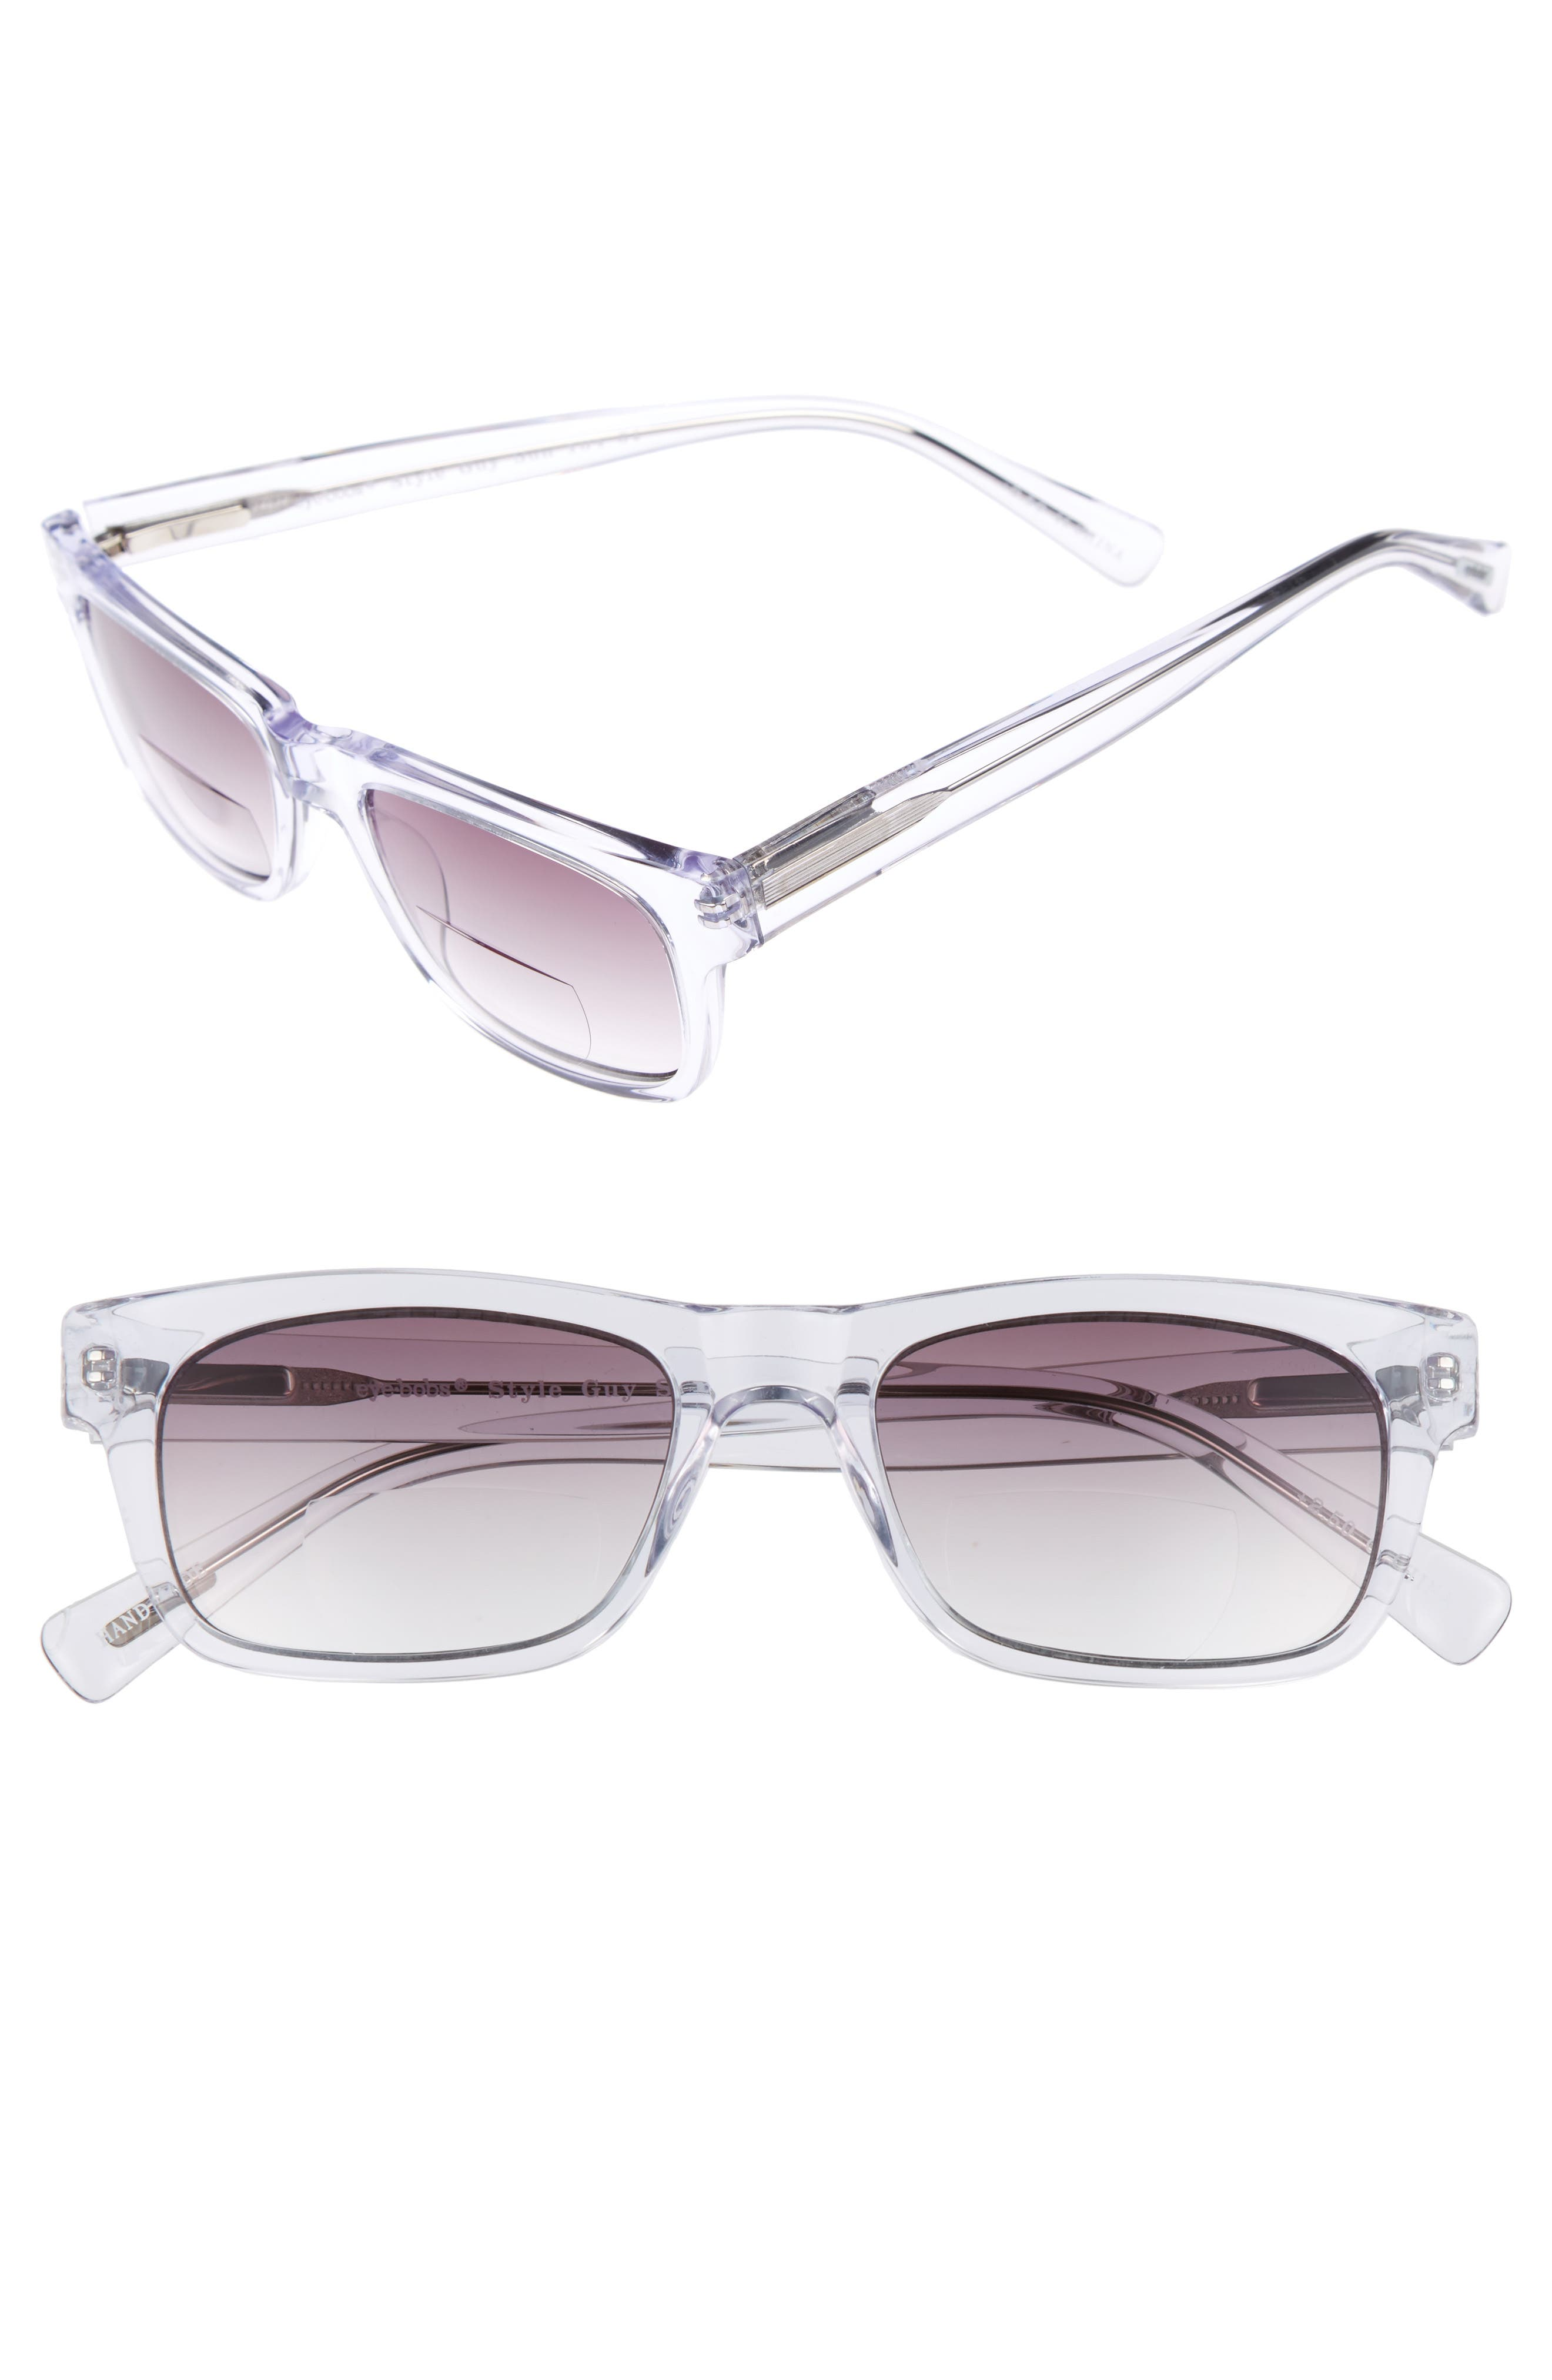 EYEBOBS Style Guy Sun Reader 52Mm Reading Sunglasses - Clear